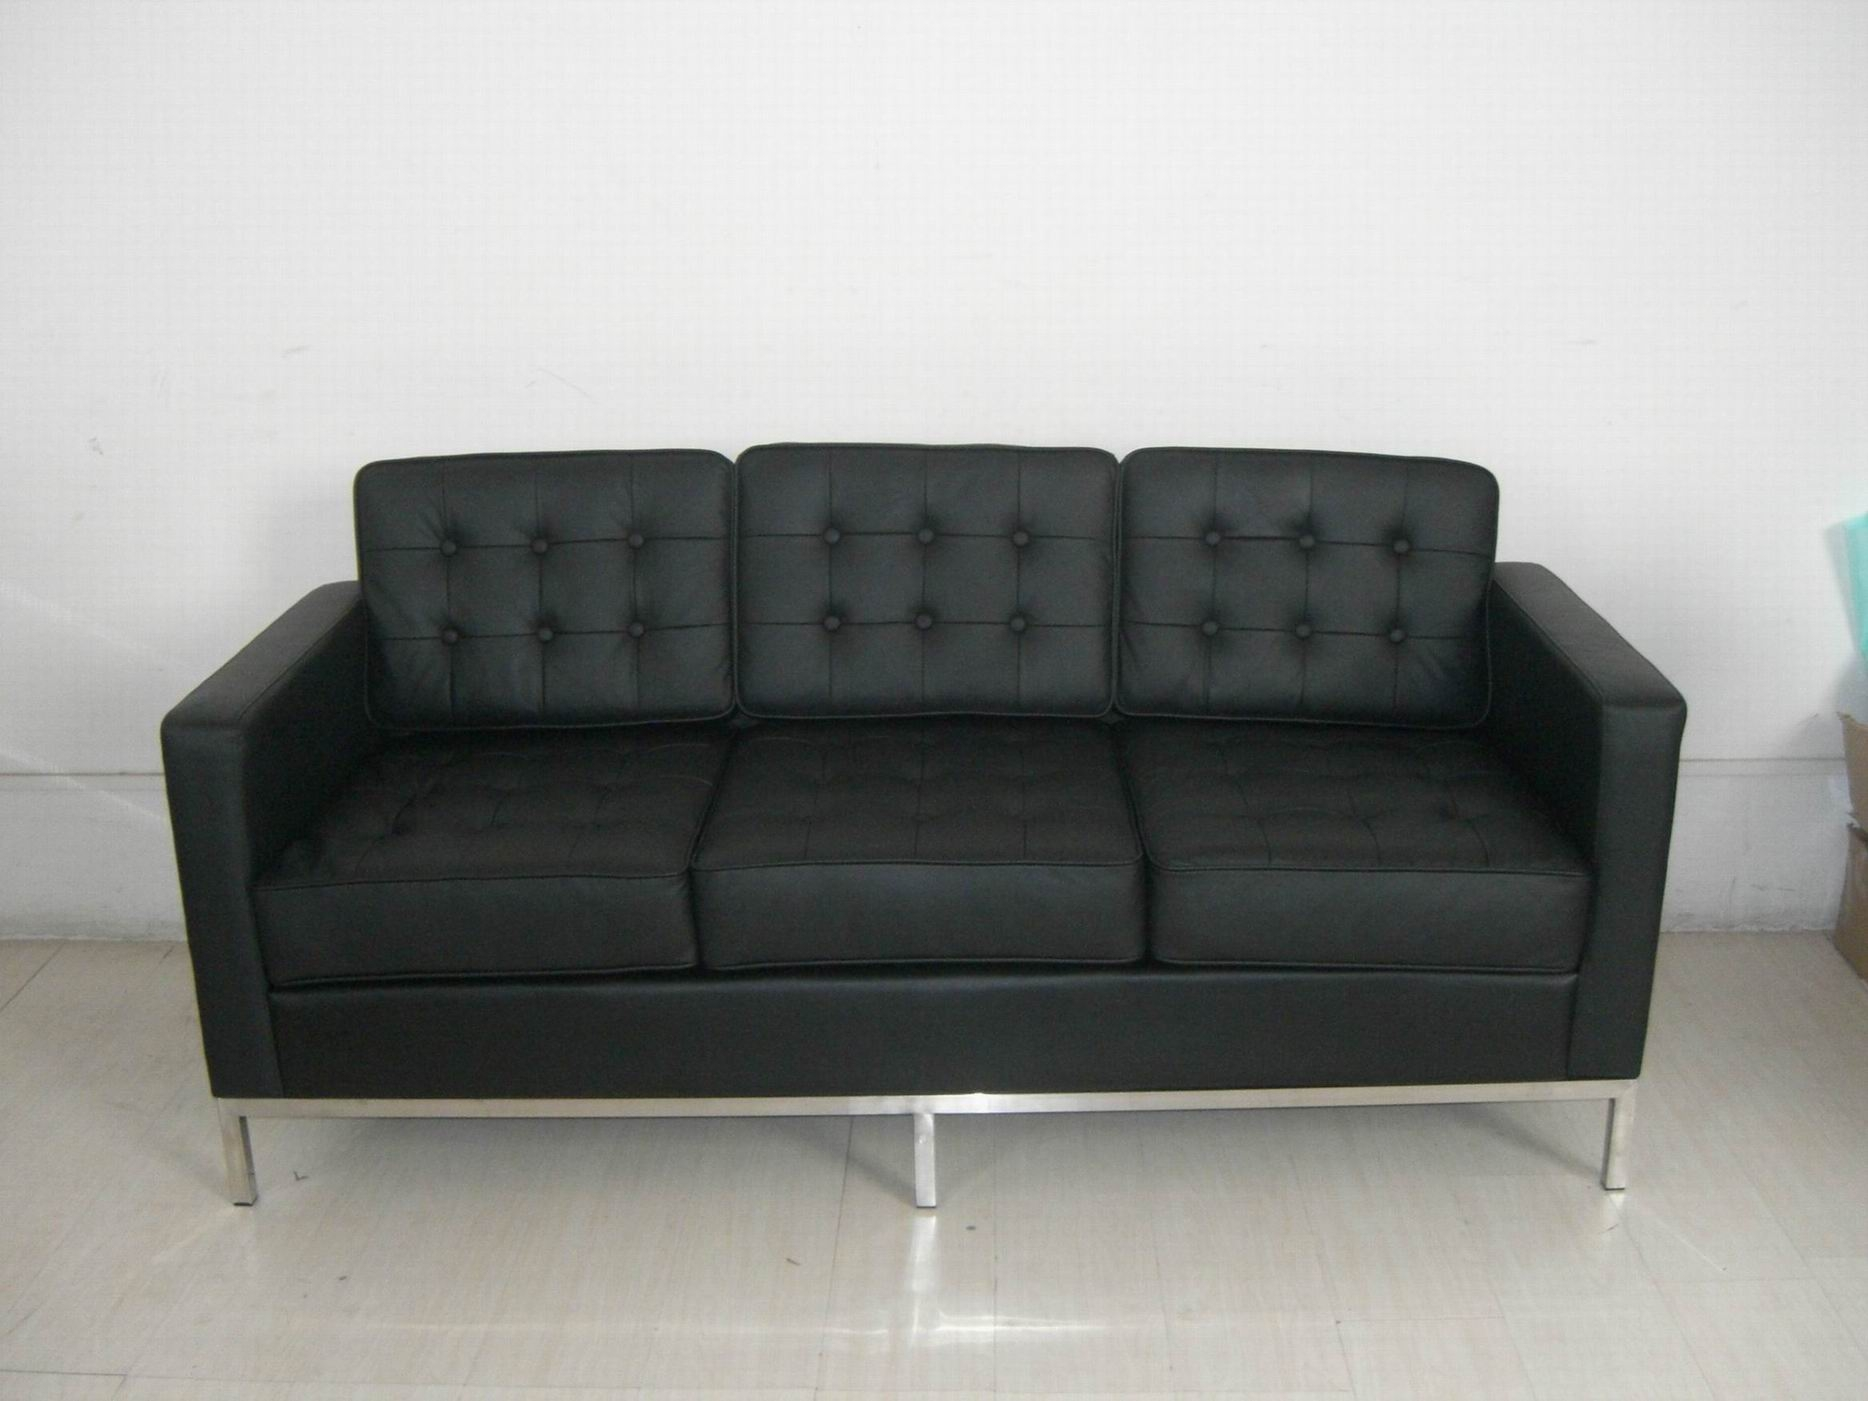 firenze sofa flexsteel reclining leather florence sofas ideas